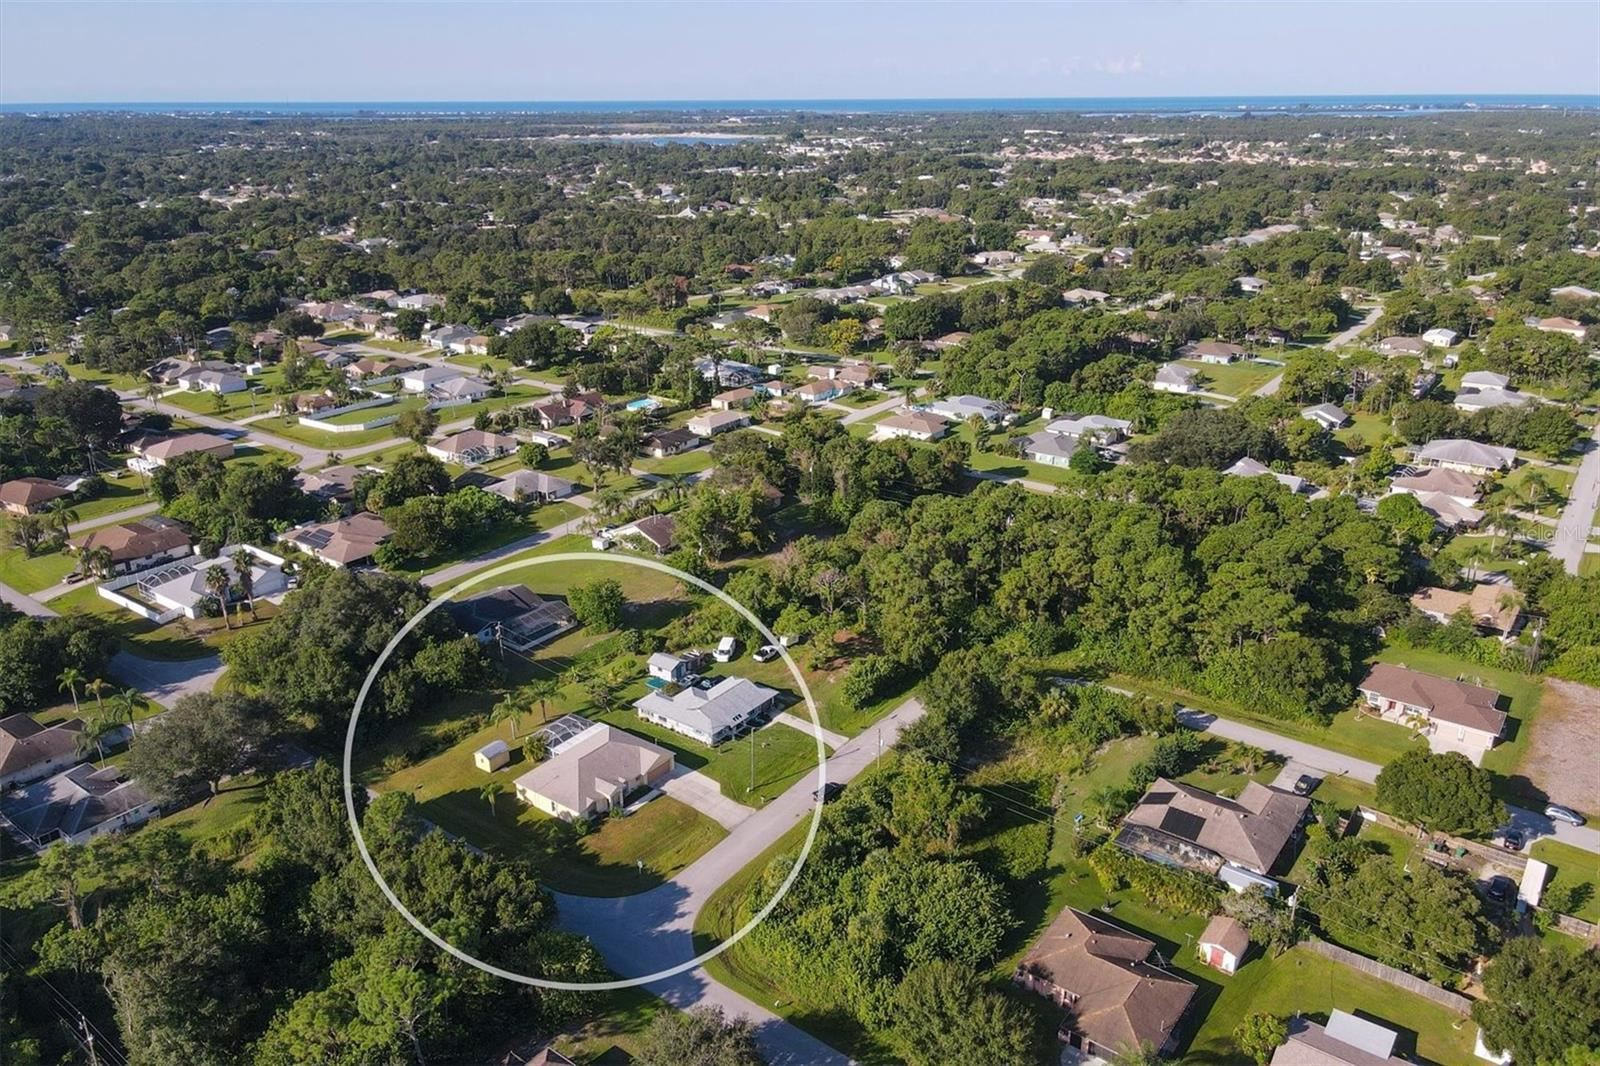 Photo of 7115 ADDERLY ROAD, ENGLEWOOD, FL 34224 (MLS # D6121528)